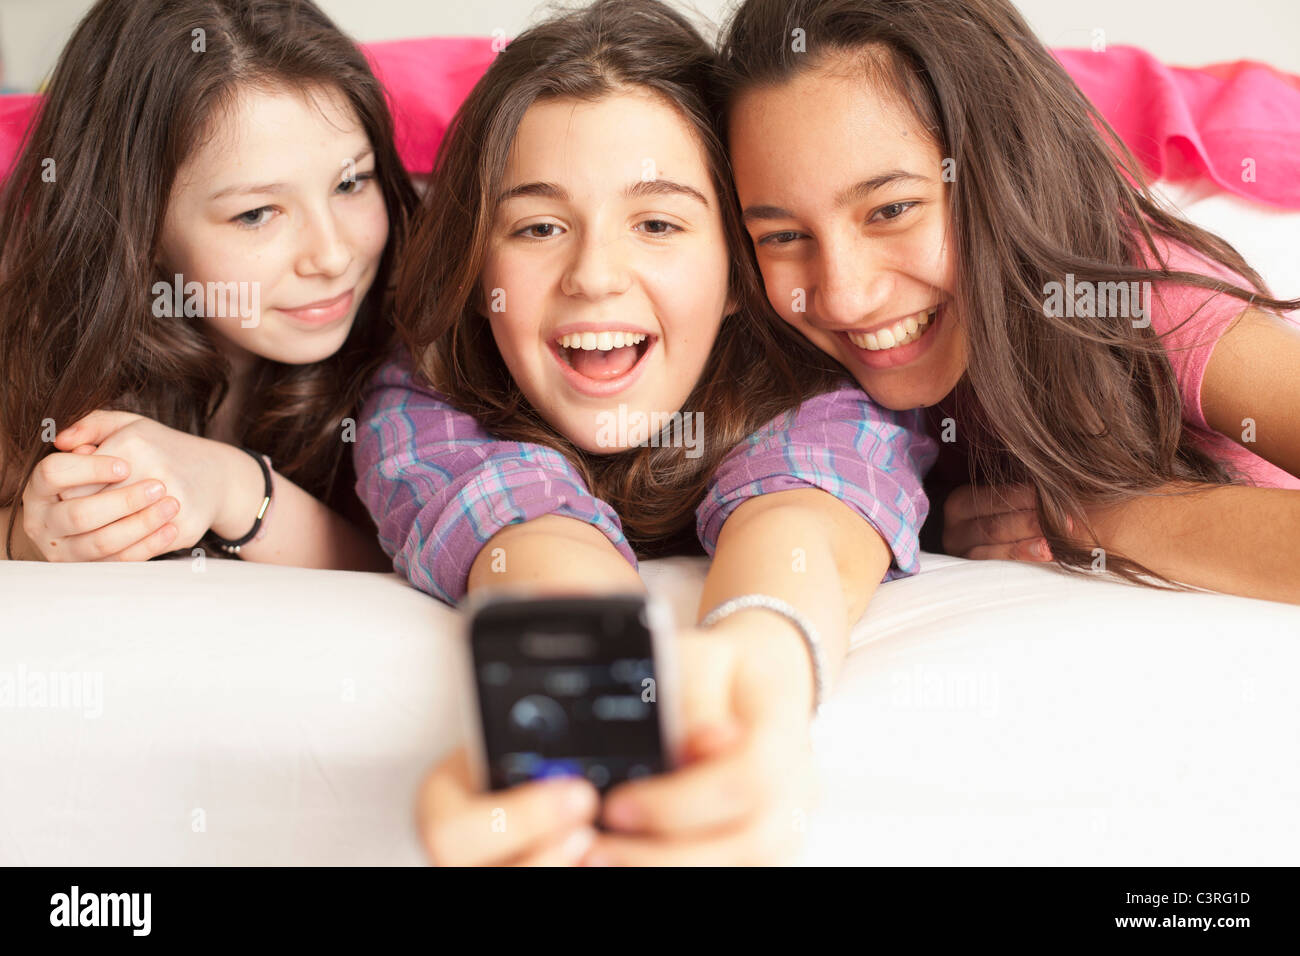 teenage girls taking photos wearing pajamas - Stock Image